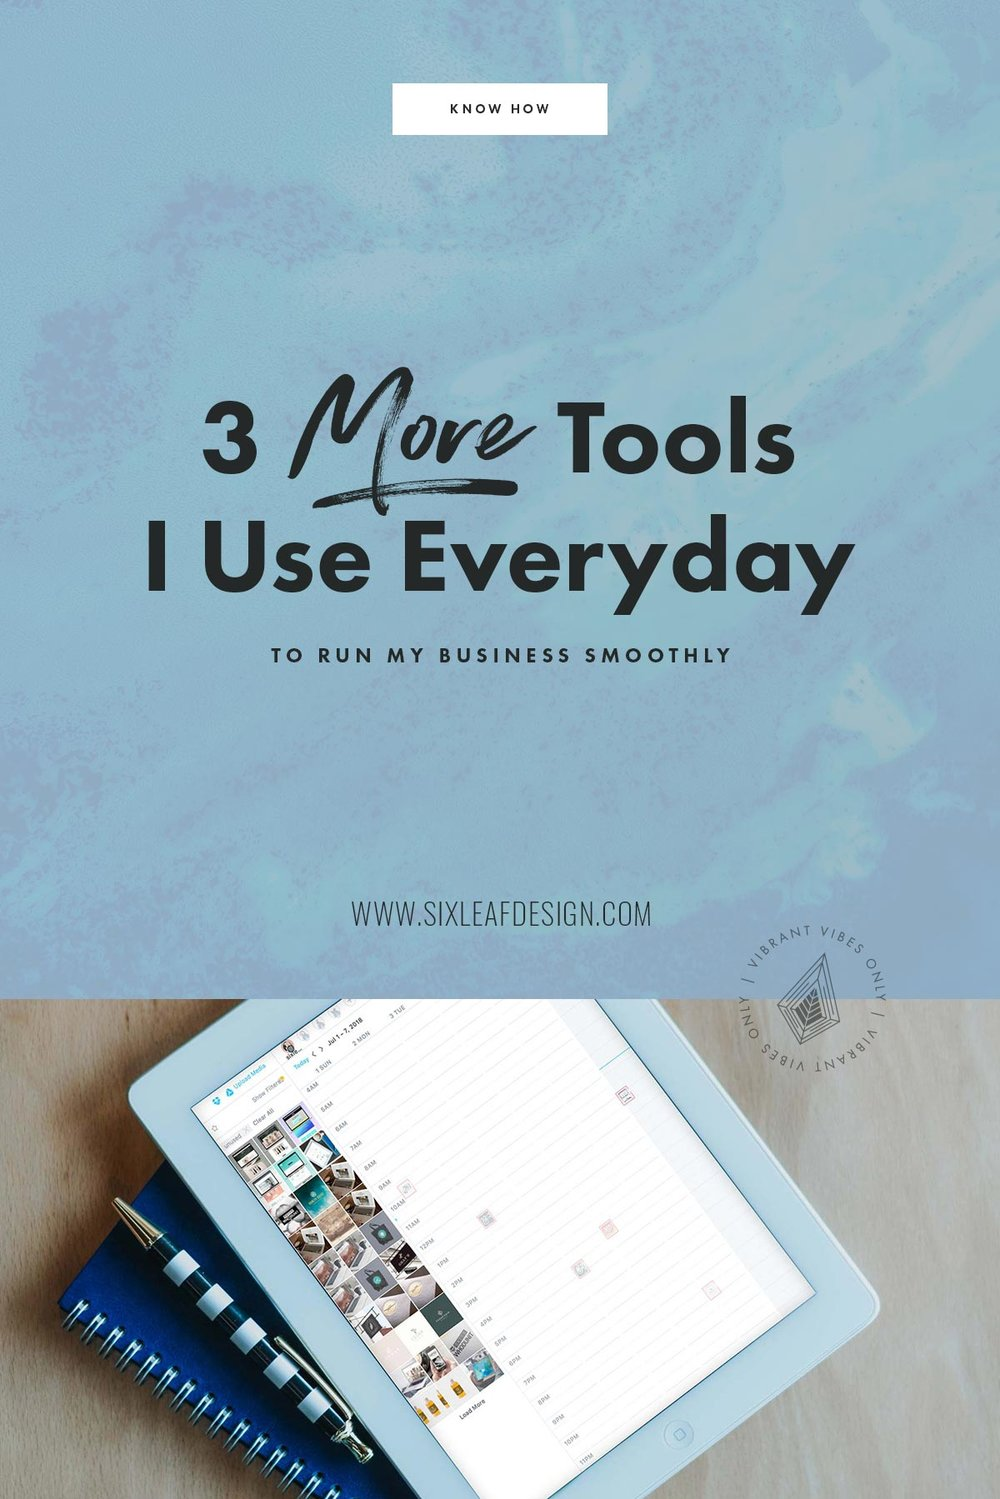 3 More Tools I Use Everyday To Run My Business Smoothly